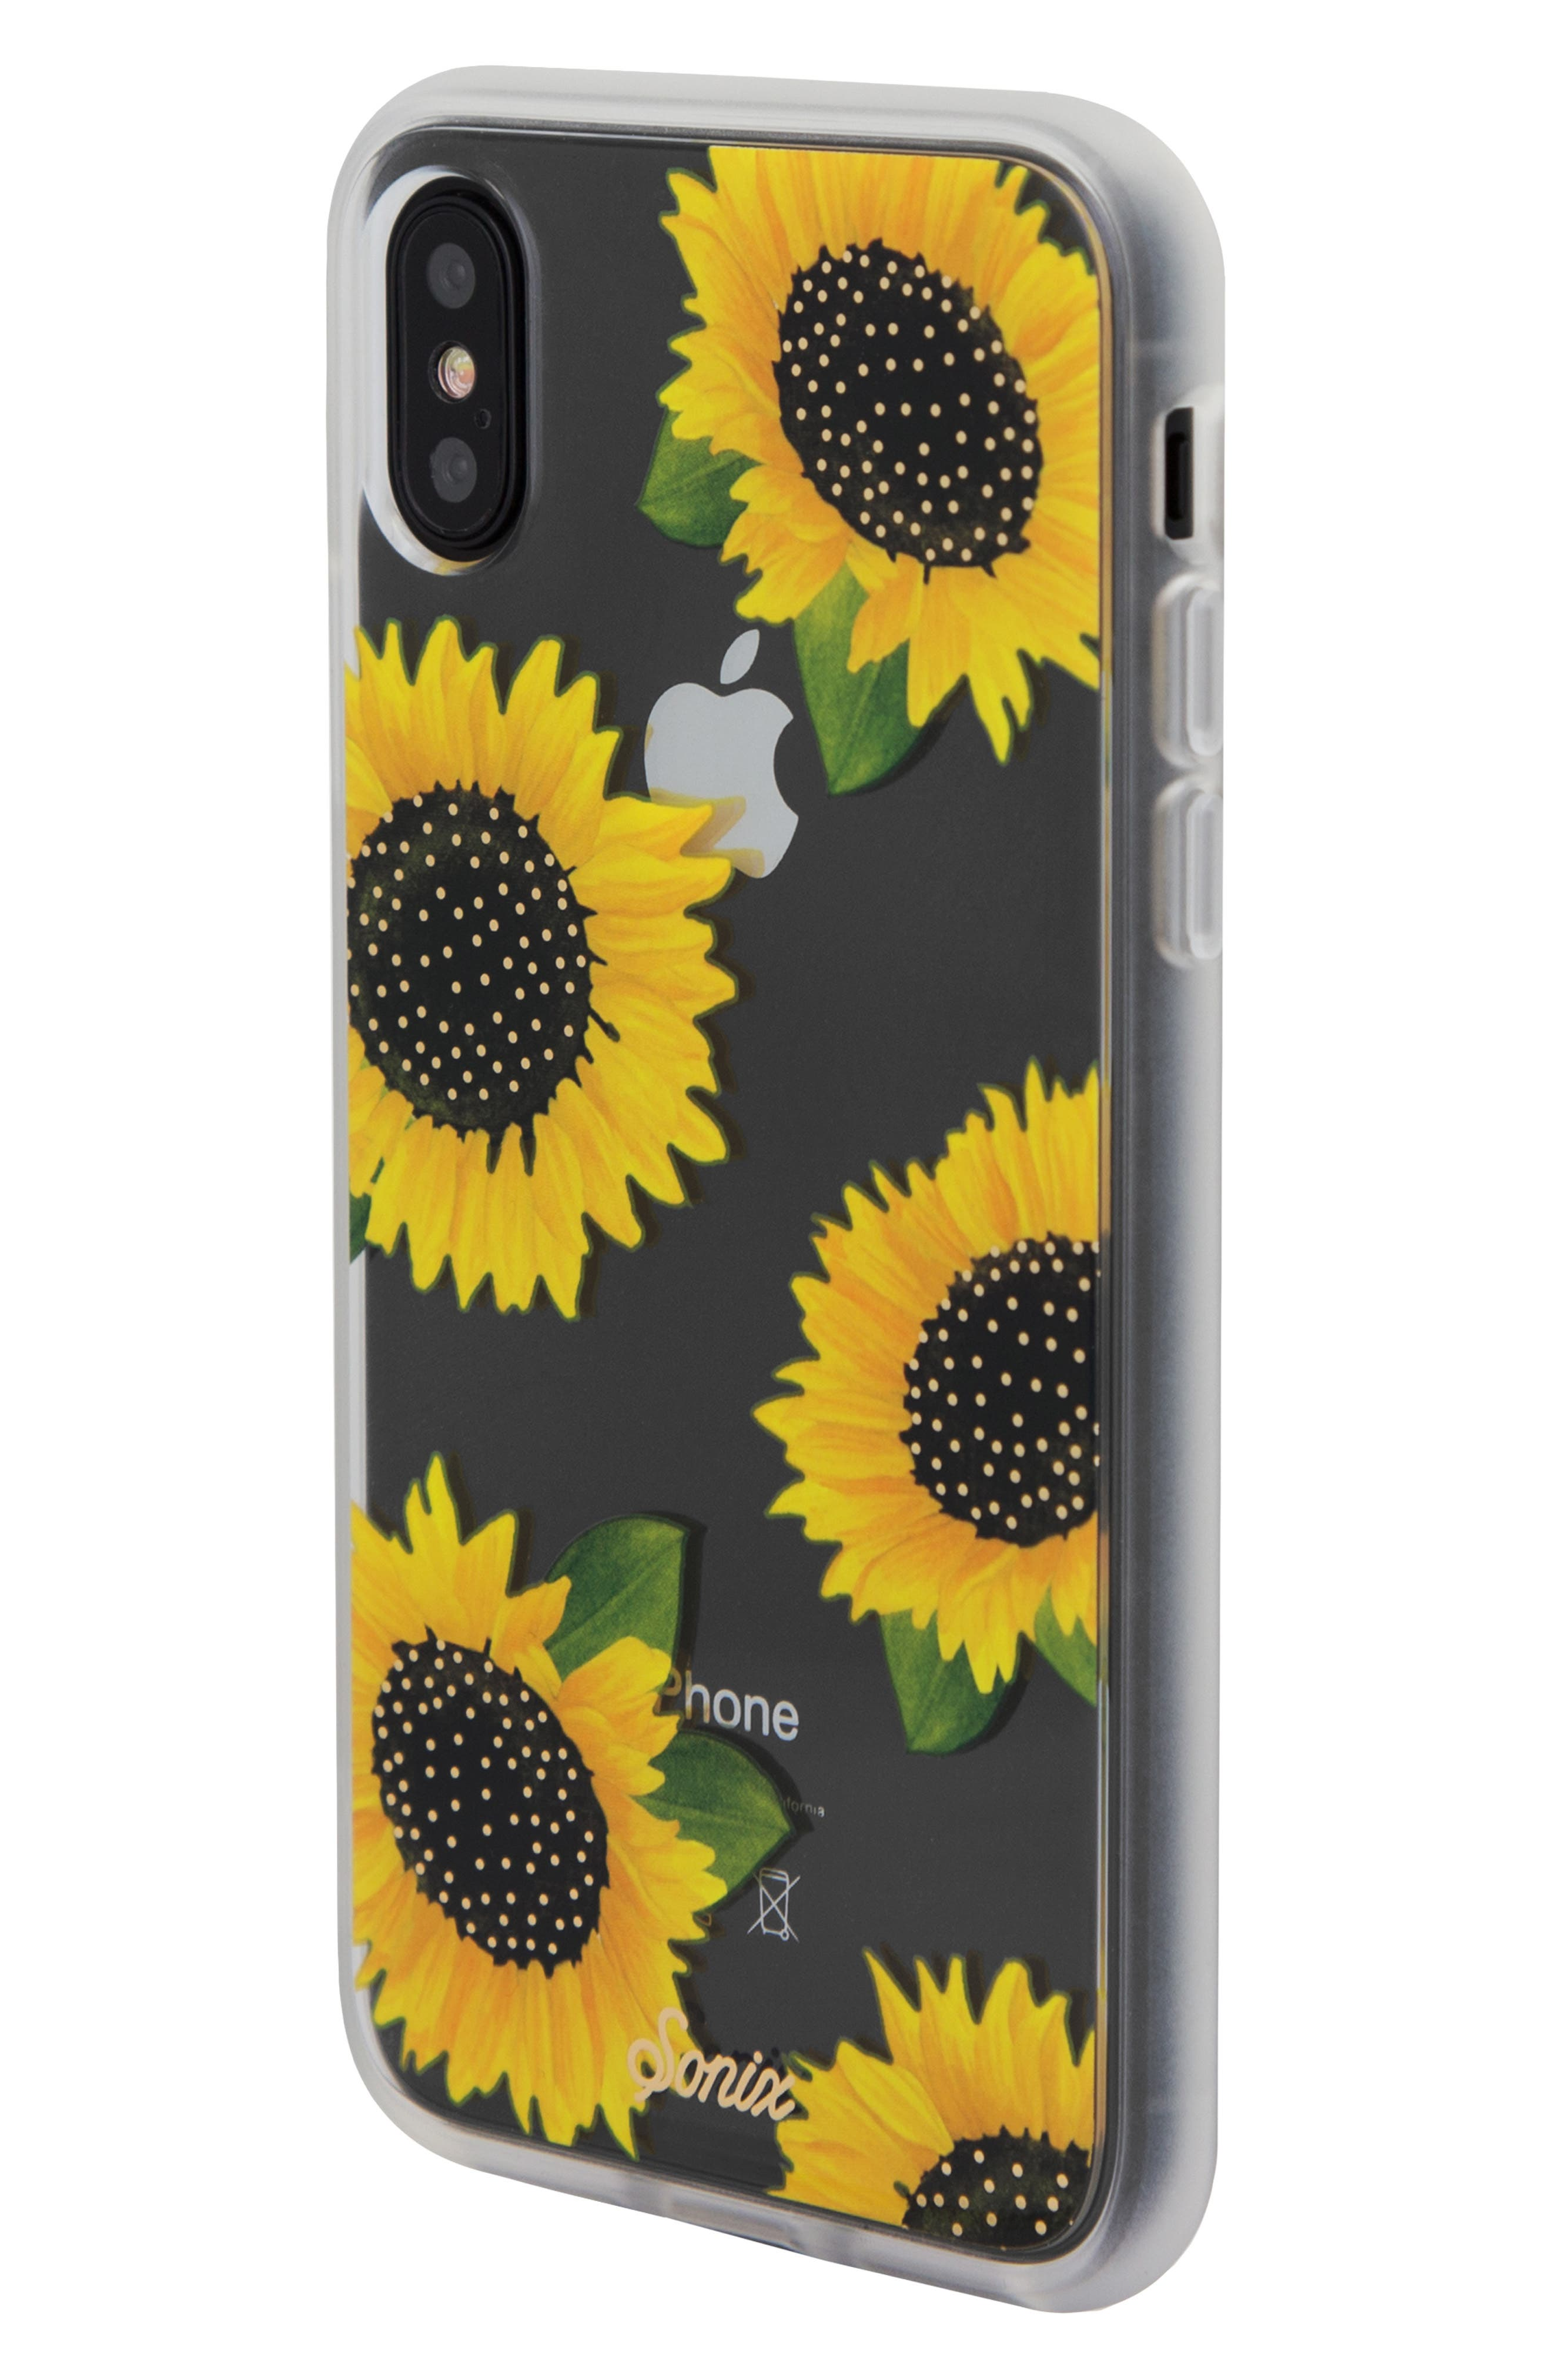 Sunflower iPhone X/Xs, XR & X Max Case,                             Alternate thumbnail 2, color,                             YELLOW